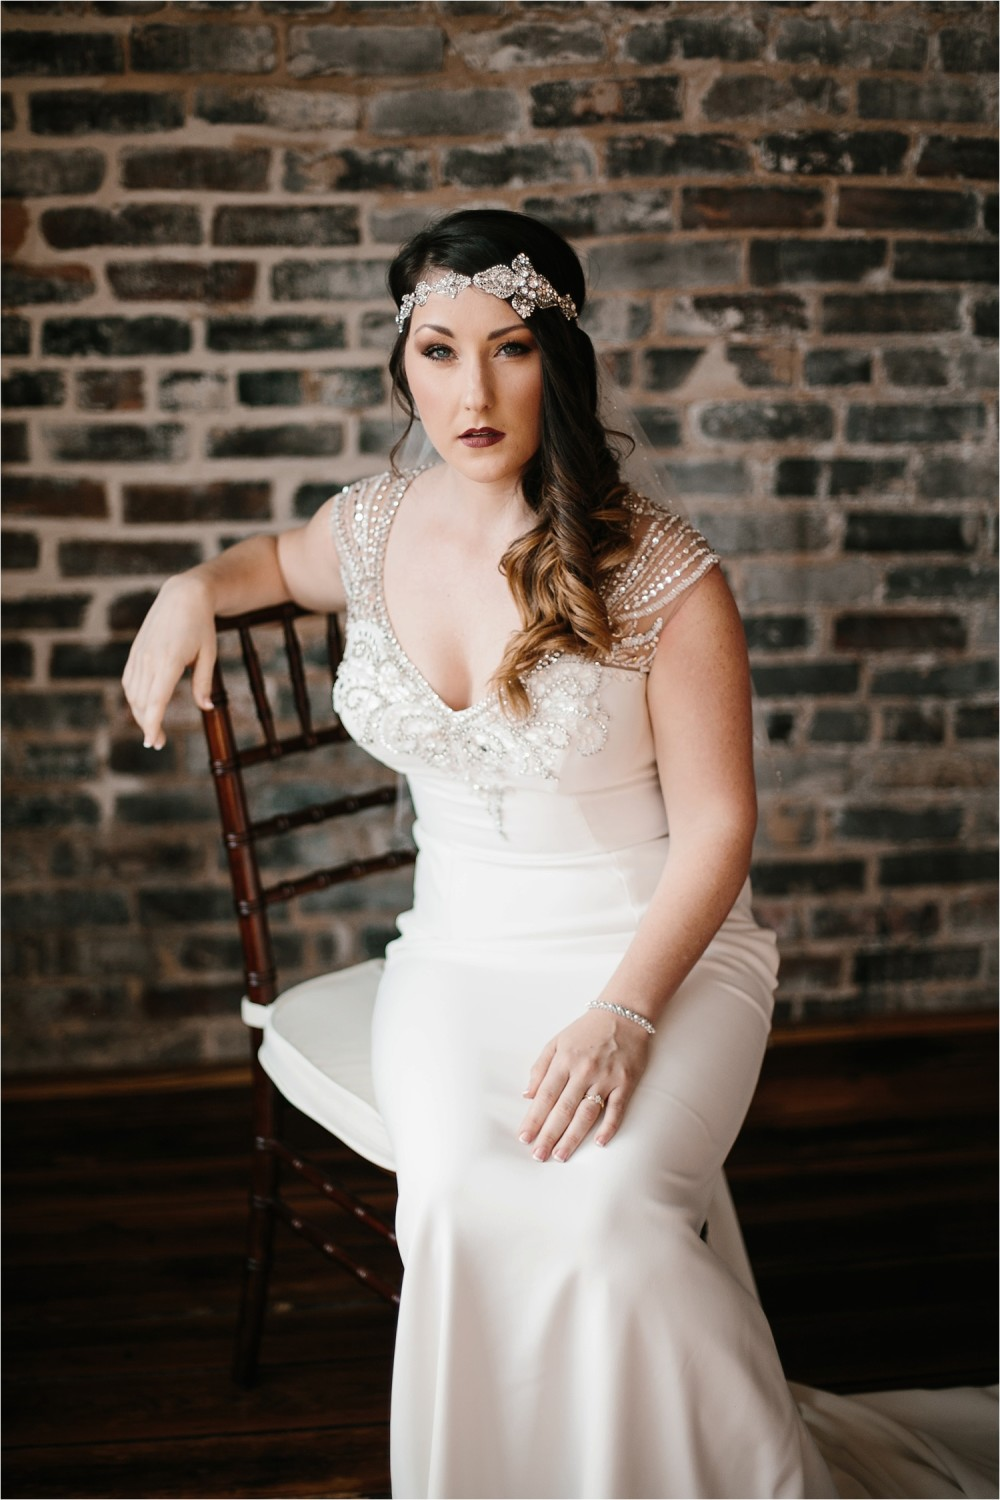 whittney-drew-__-an-intimate-wine-and-navy-wedding-in-an-industrial-venue-at-loft-123-in-paris-tx-by-north-texas-wedding-photographer-rachel-meagan-photography-_-024